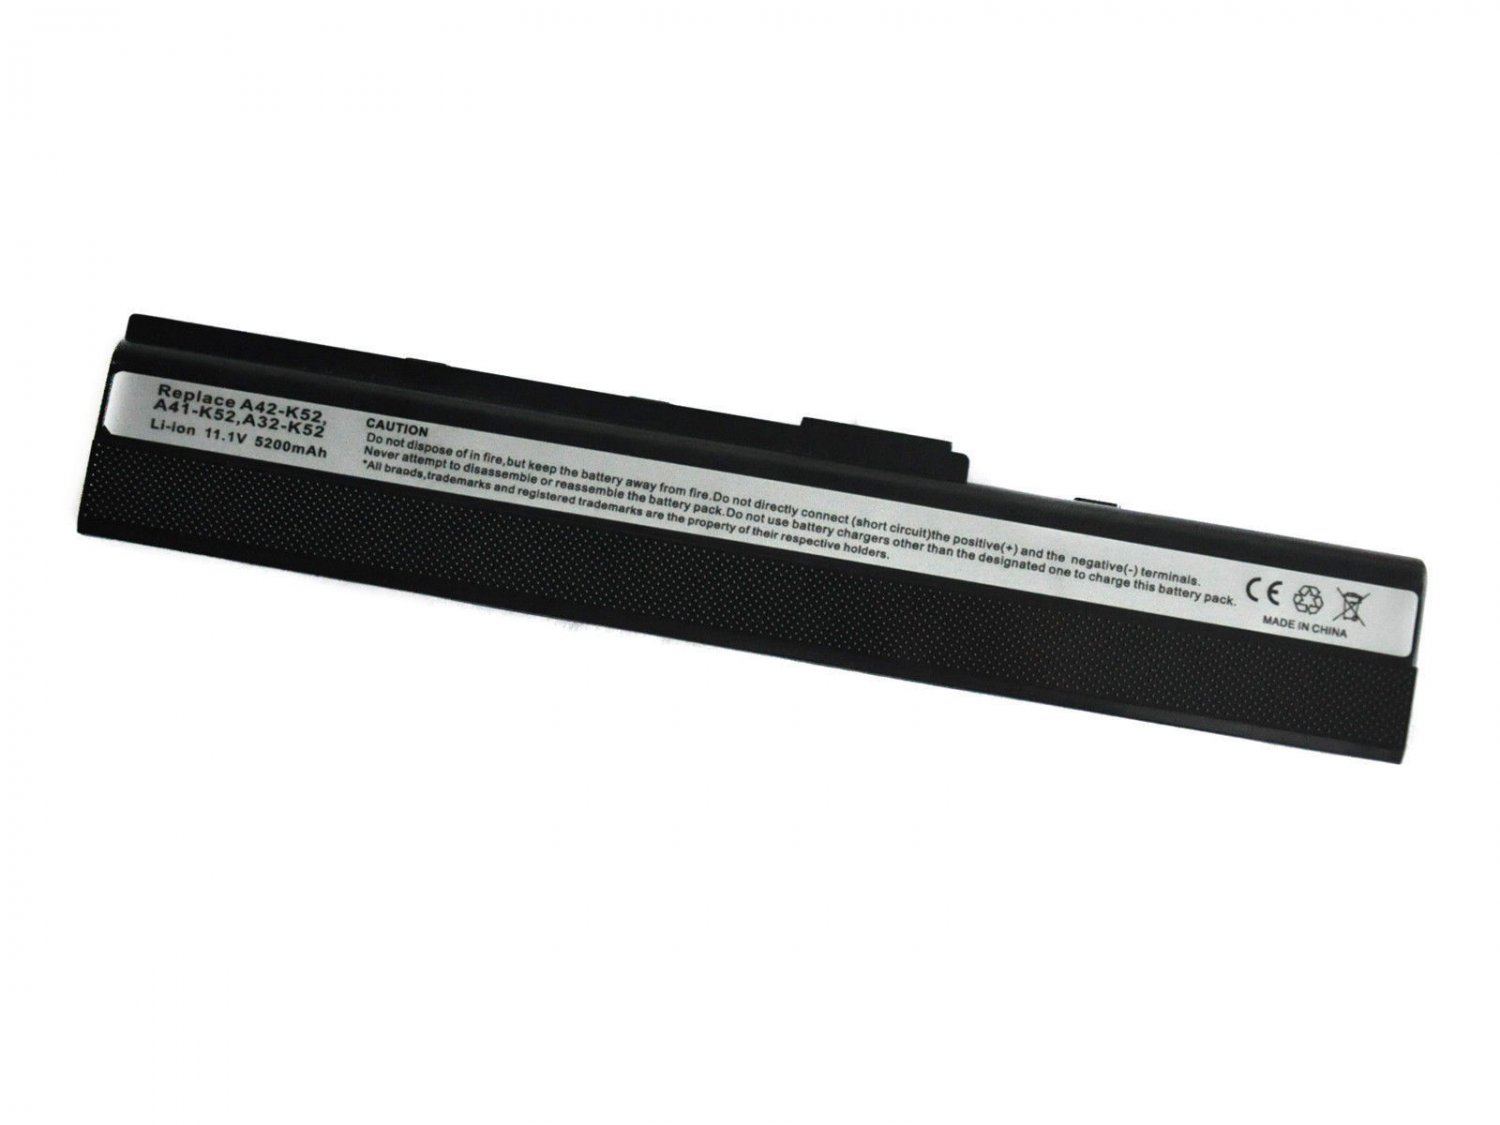 New Li-ion 6 Cell Laptop Battery for Asus A41-K52 A42-K52 A52 K52JR-X5 A52F